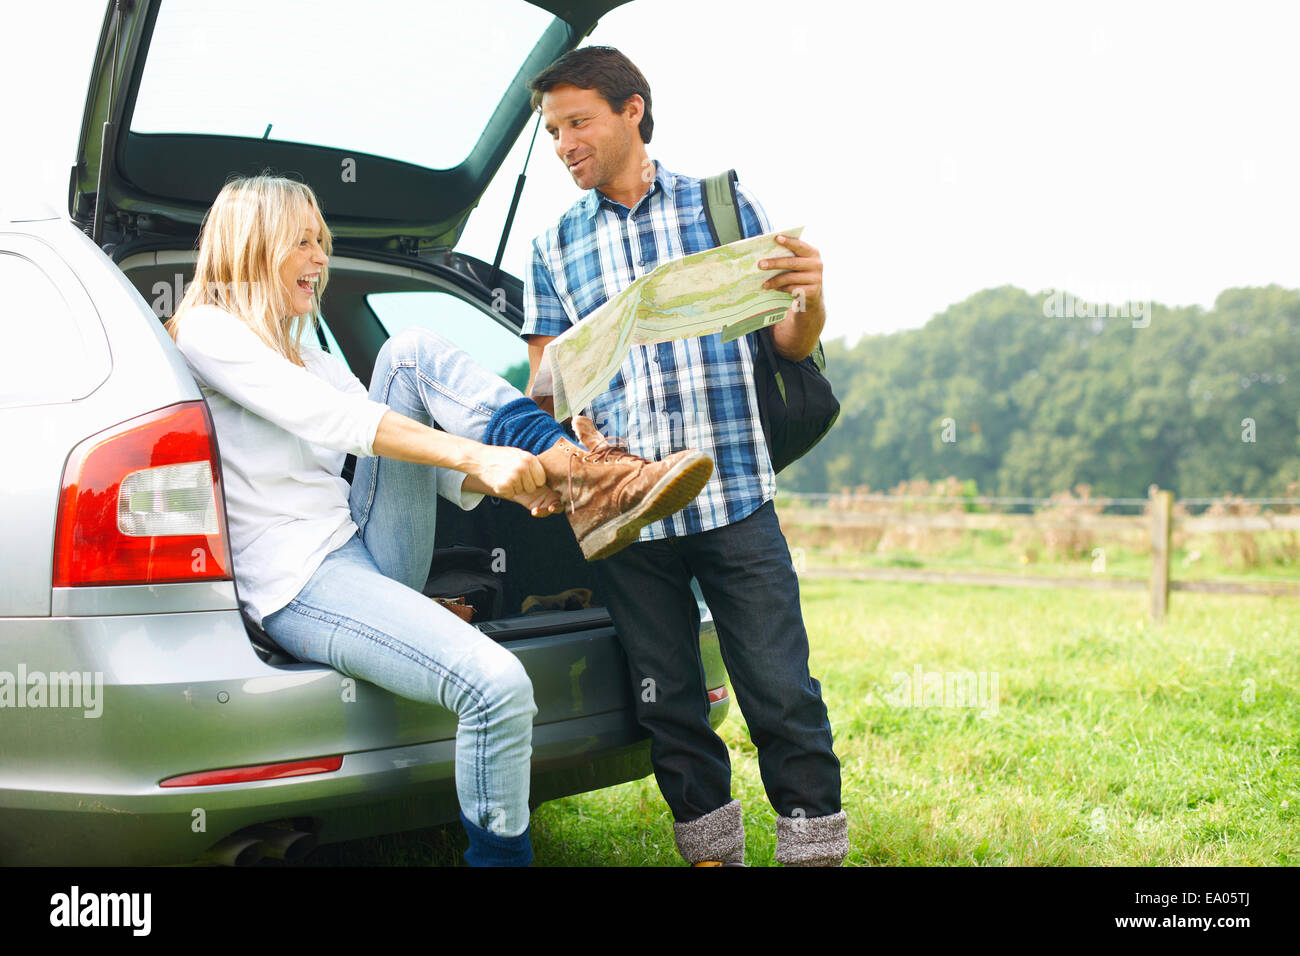 Couple at rear of car map reading preparing for walk - Stock Image